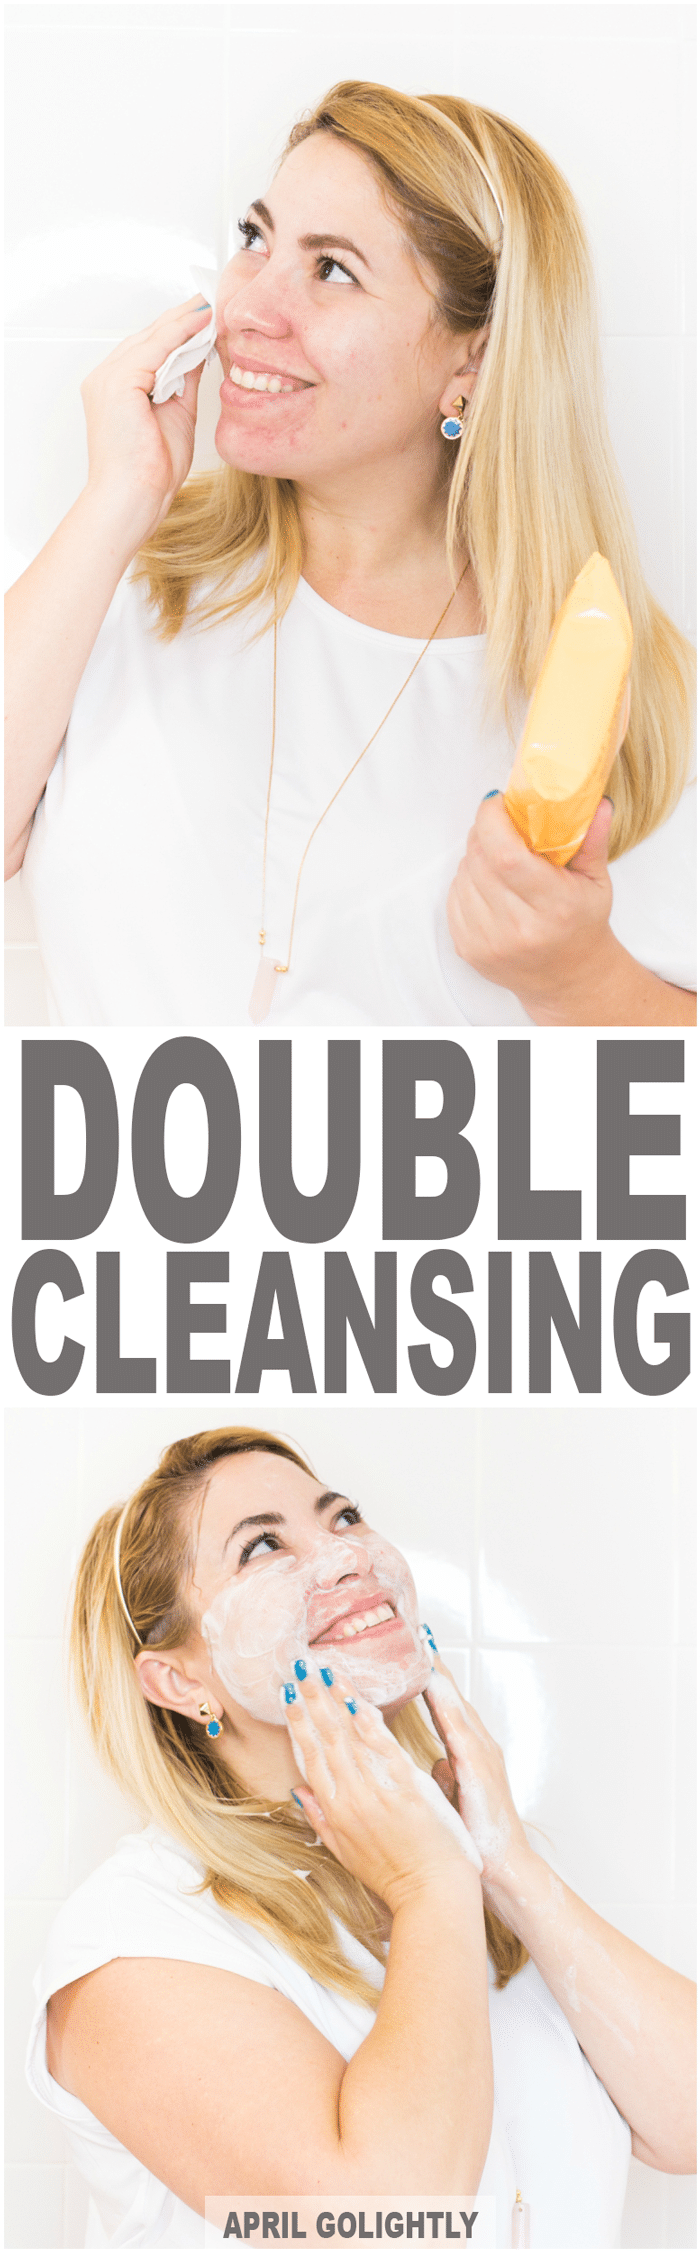 Double Cleanse Skin Care with makeup removing wipes and grapefruit foaming cleanser